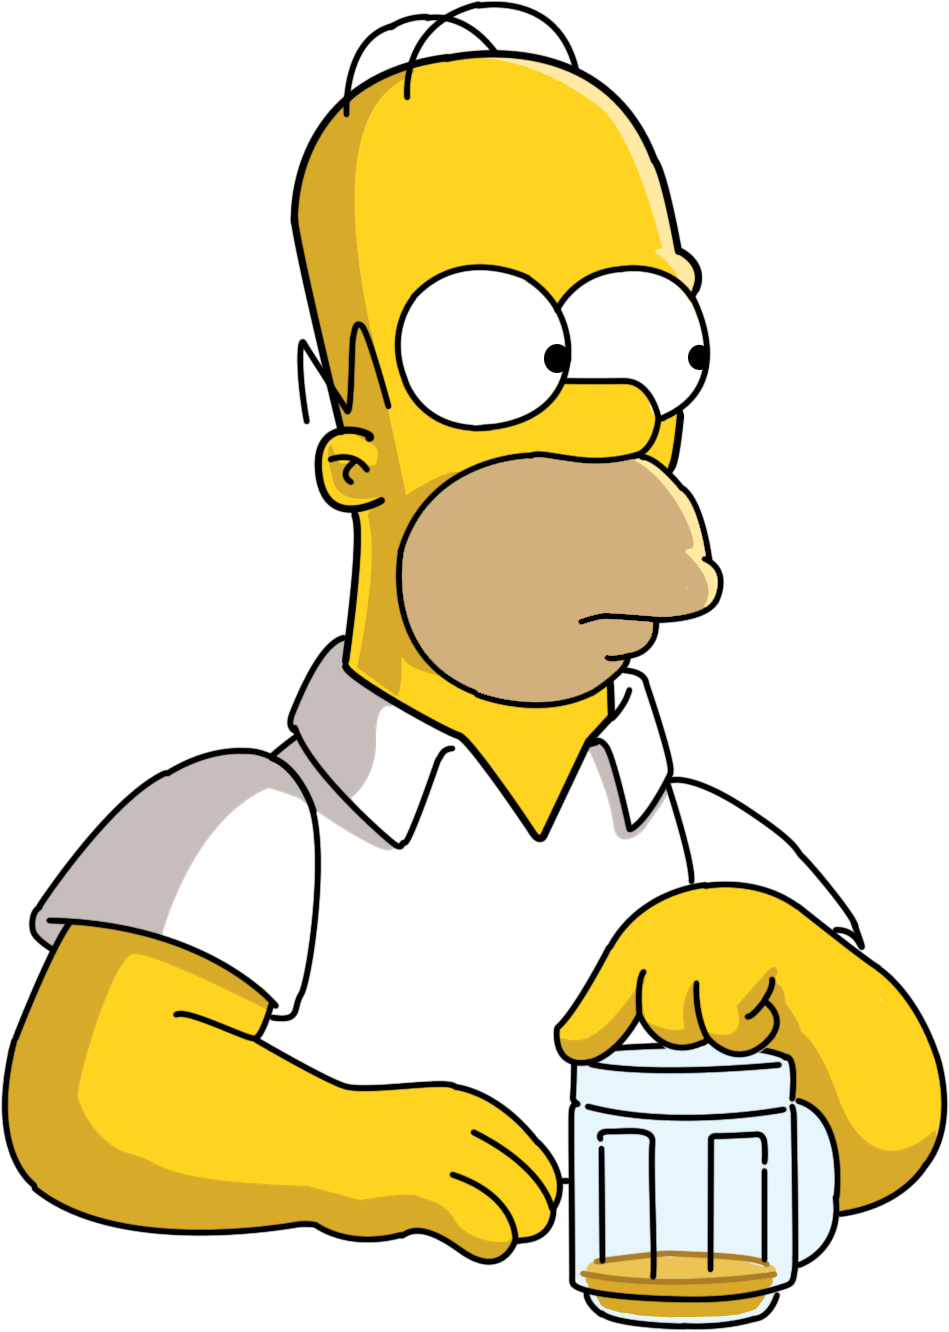 simpsons drawing homer simpson